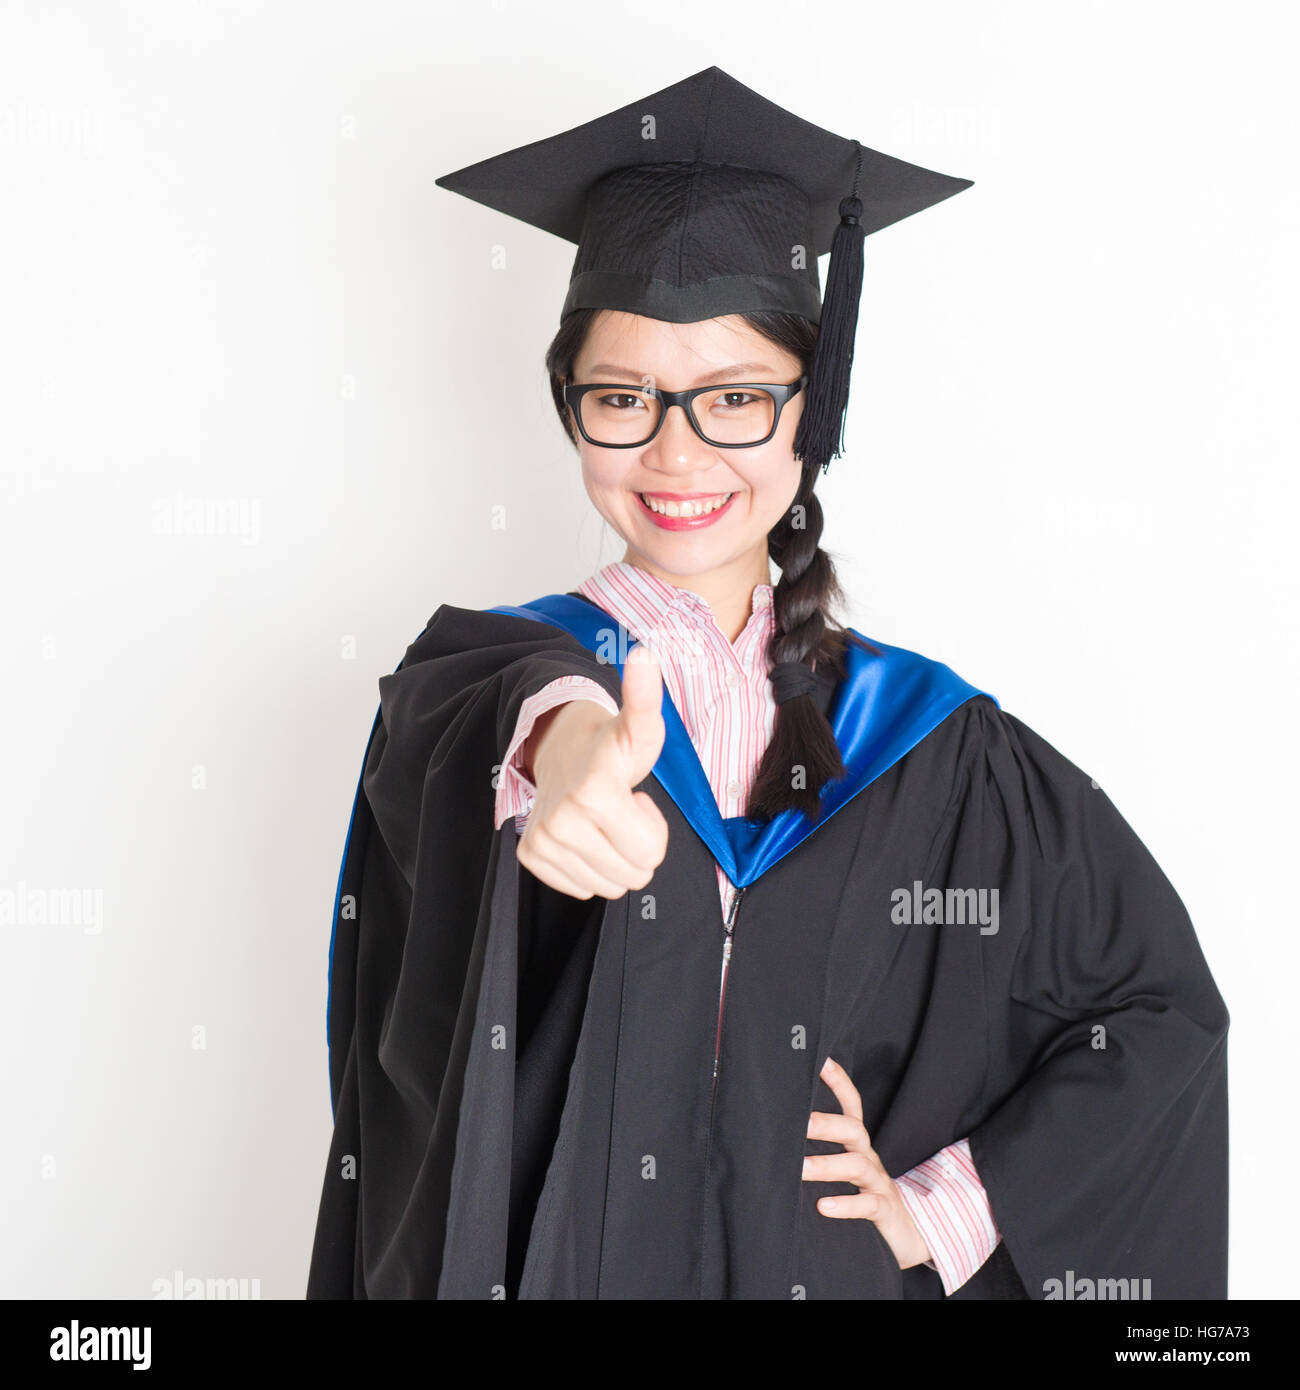 Happy university student in graduation gown and cap giving thumb up ...